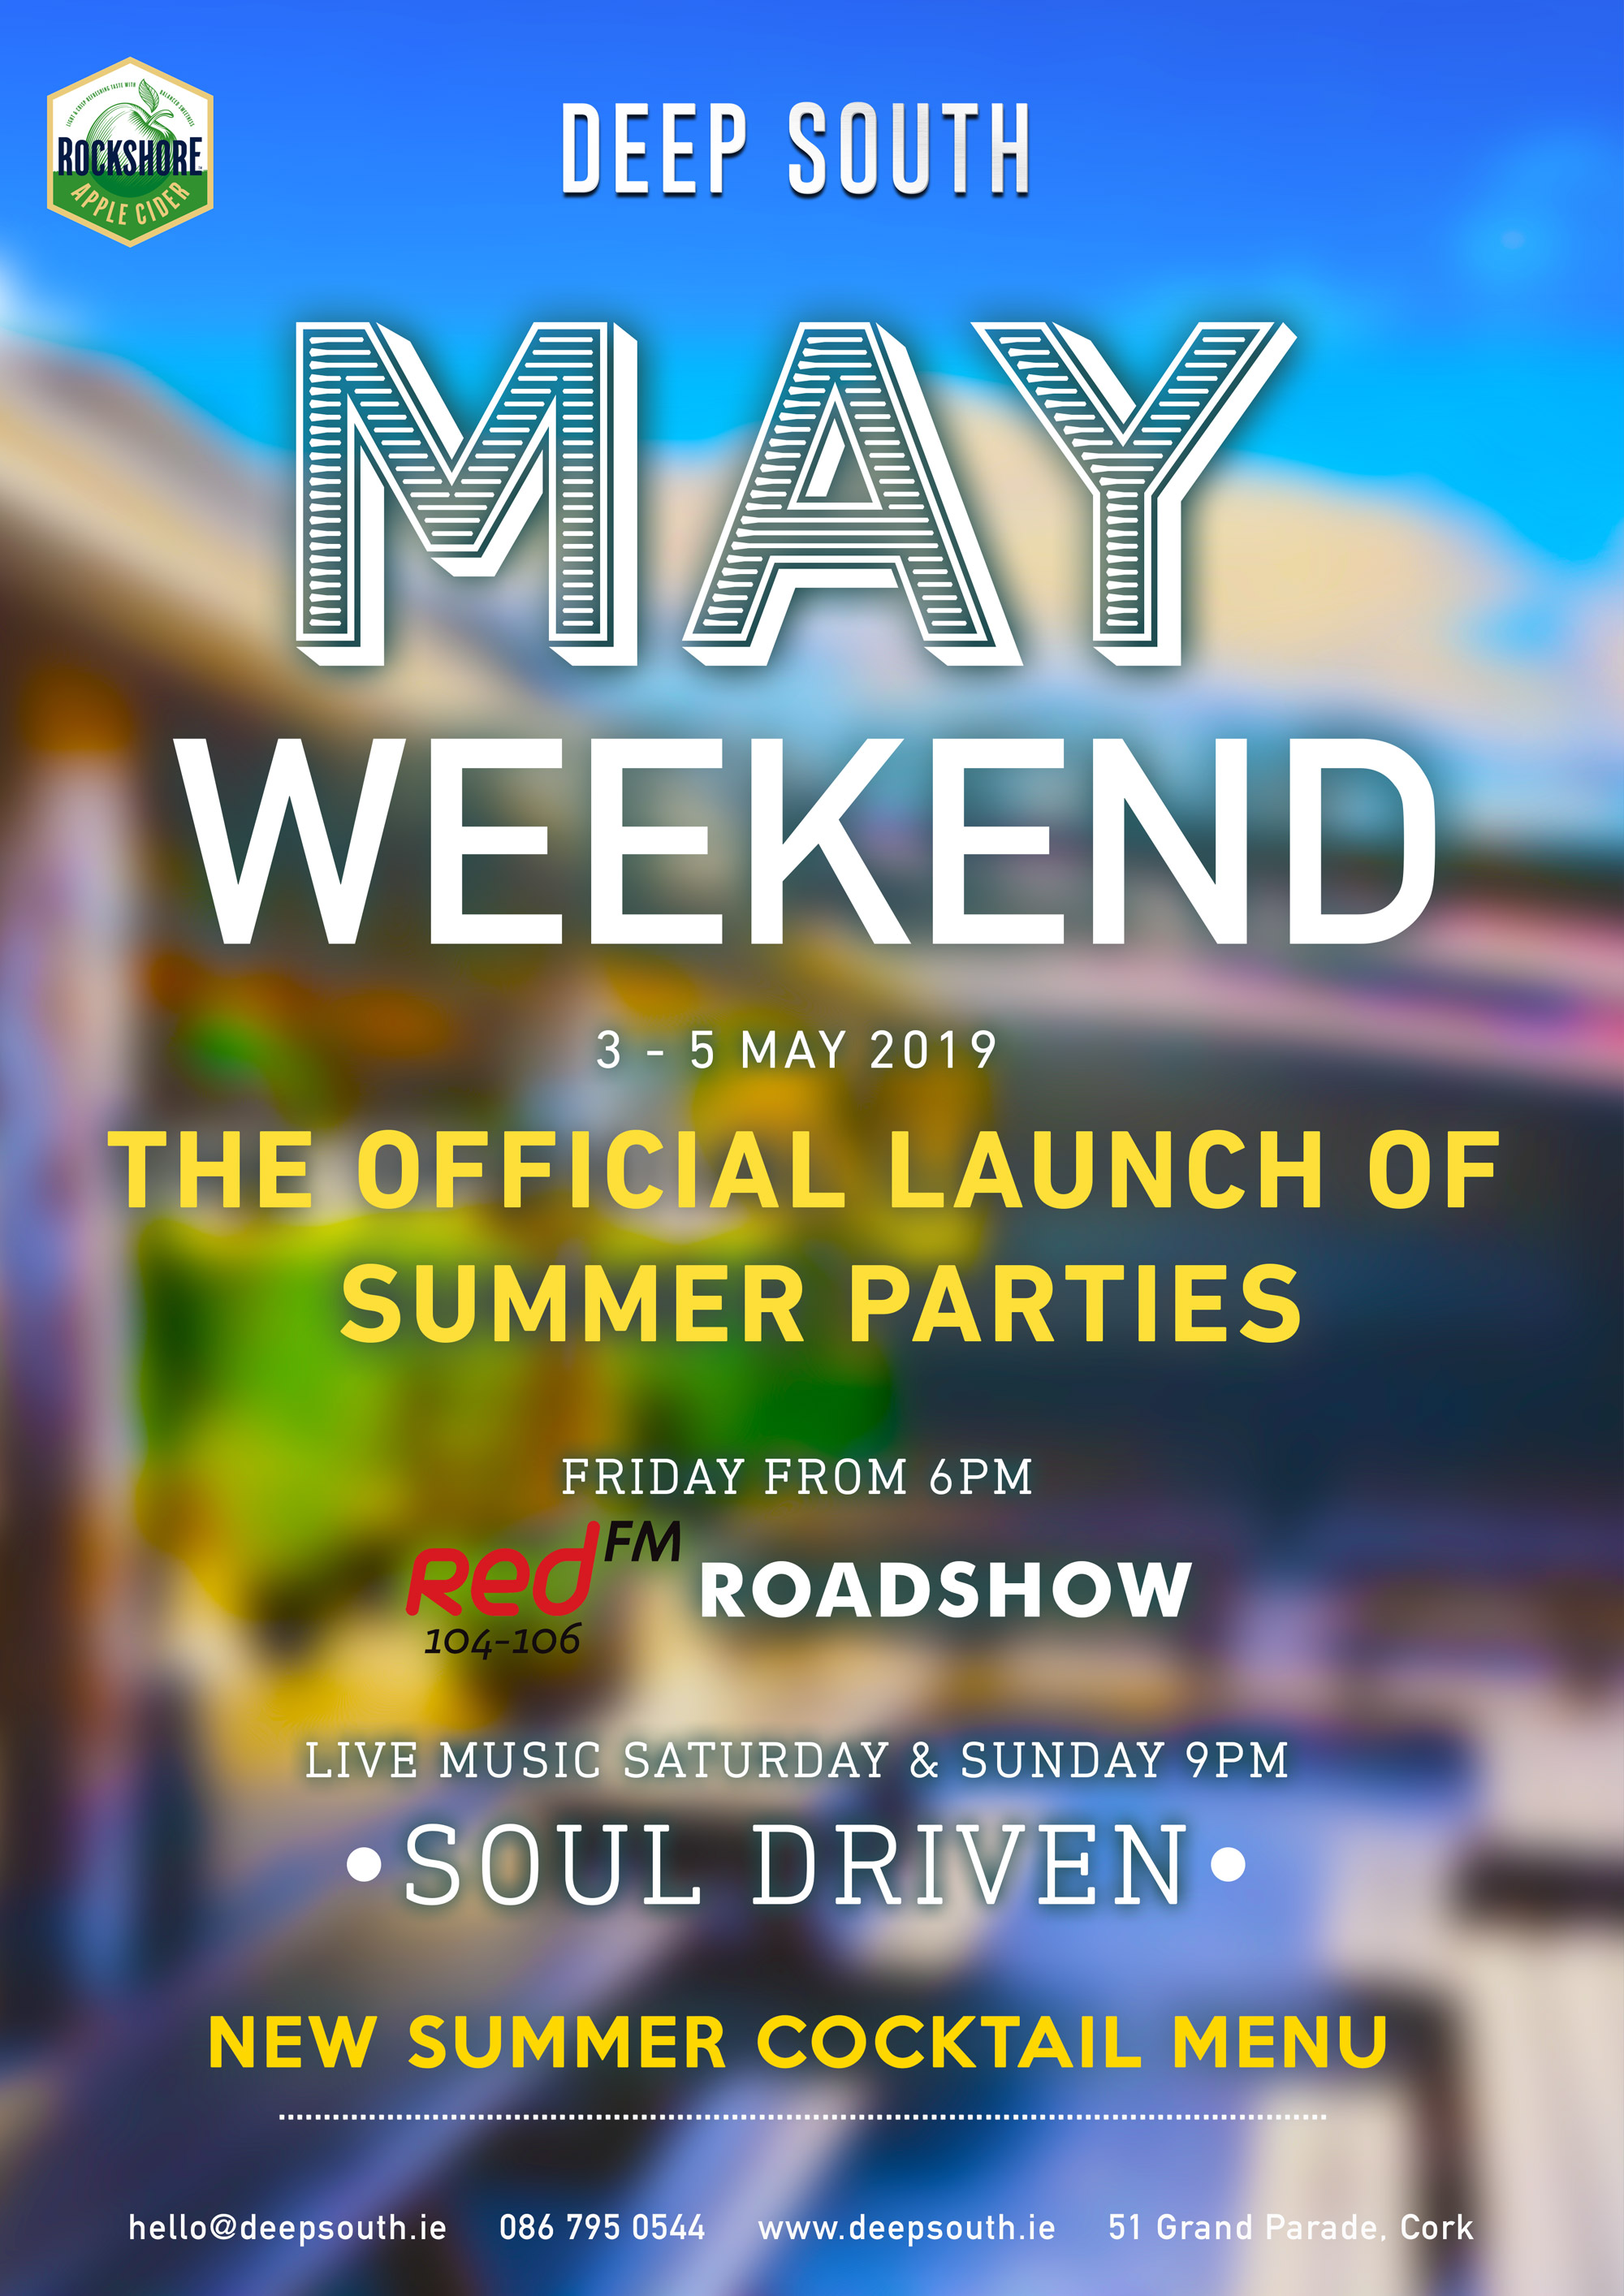 May weekend - launch of summer parties